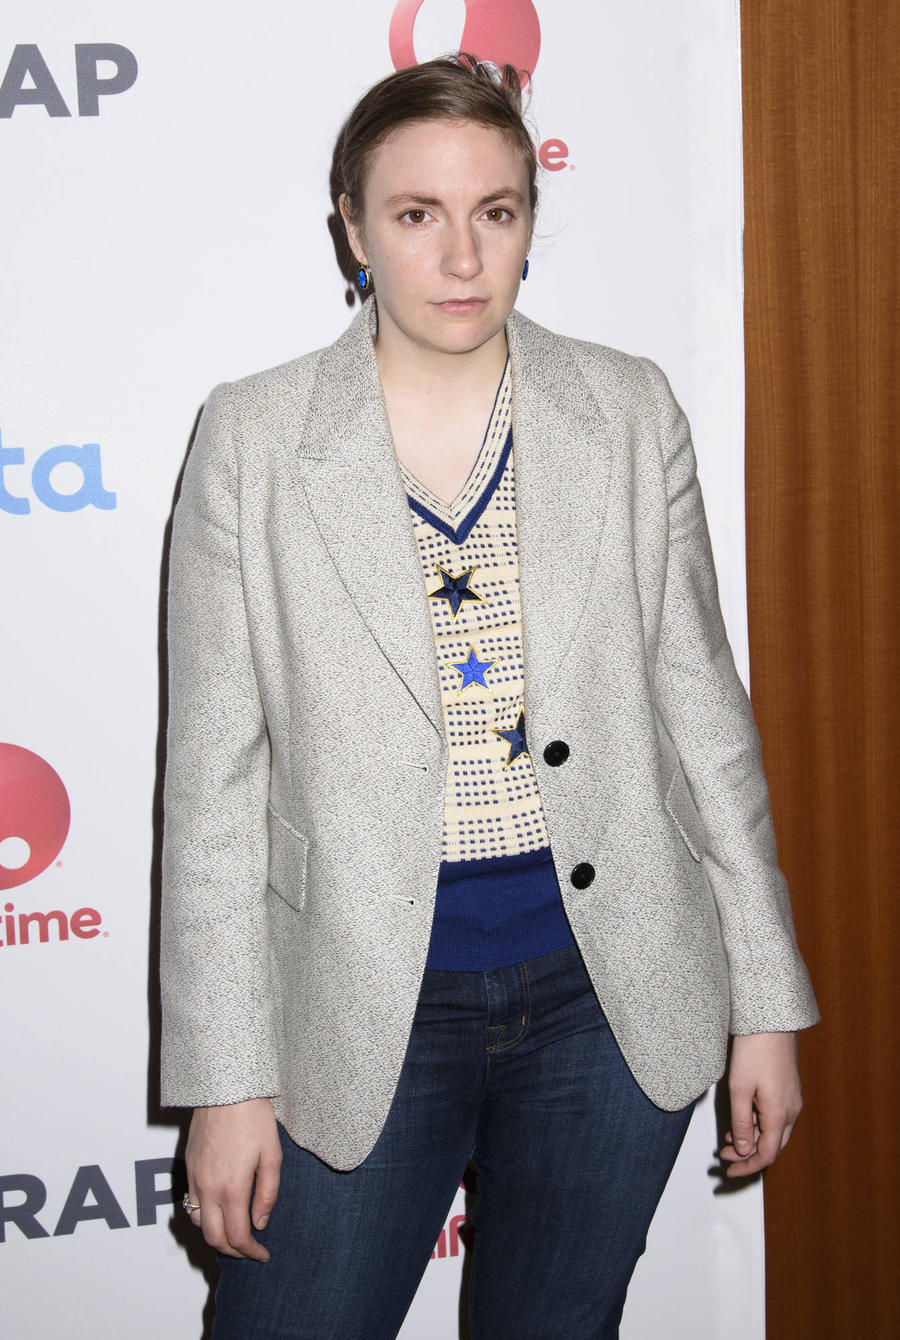 Lena Dunham Harassed By Sexist Male Director